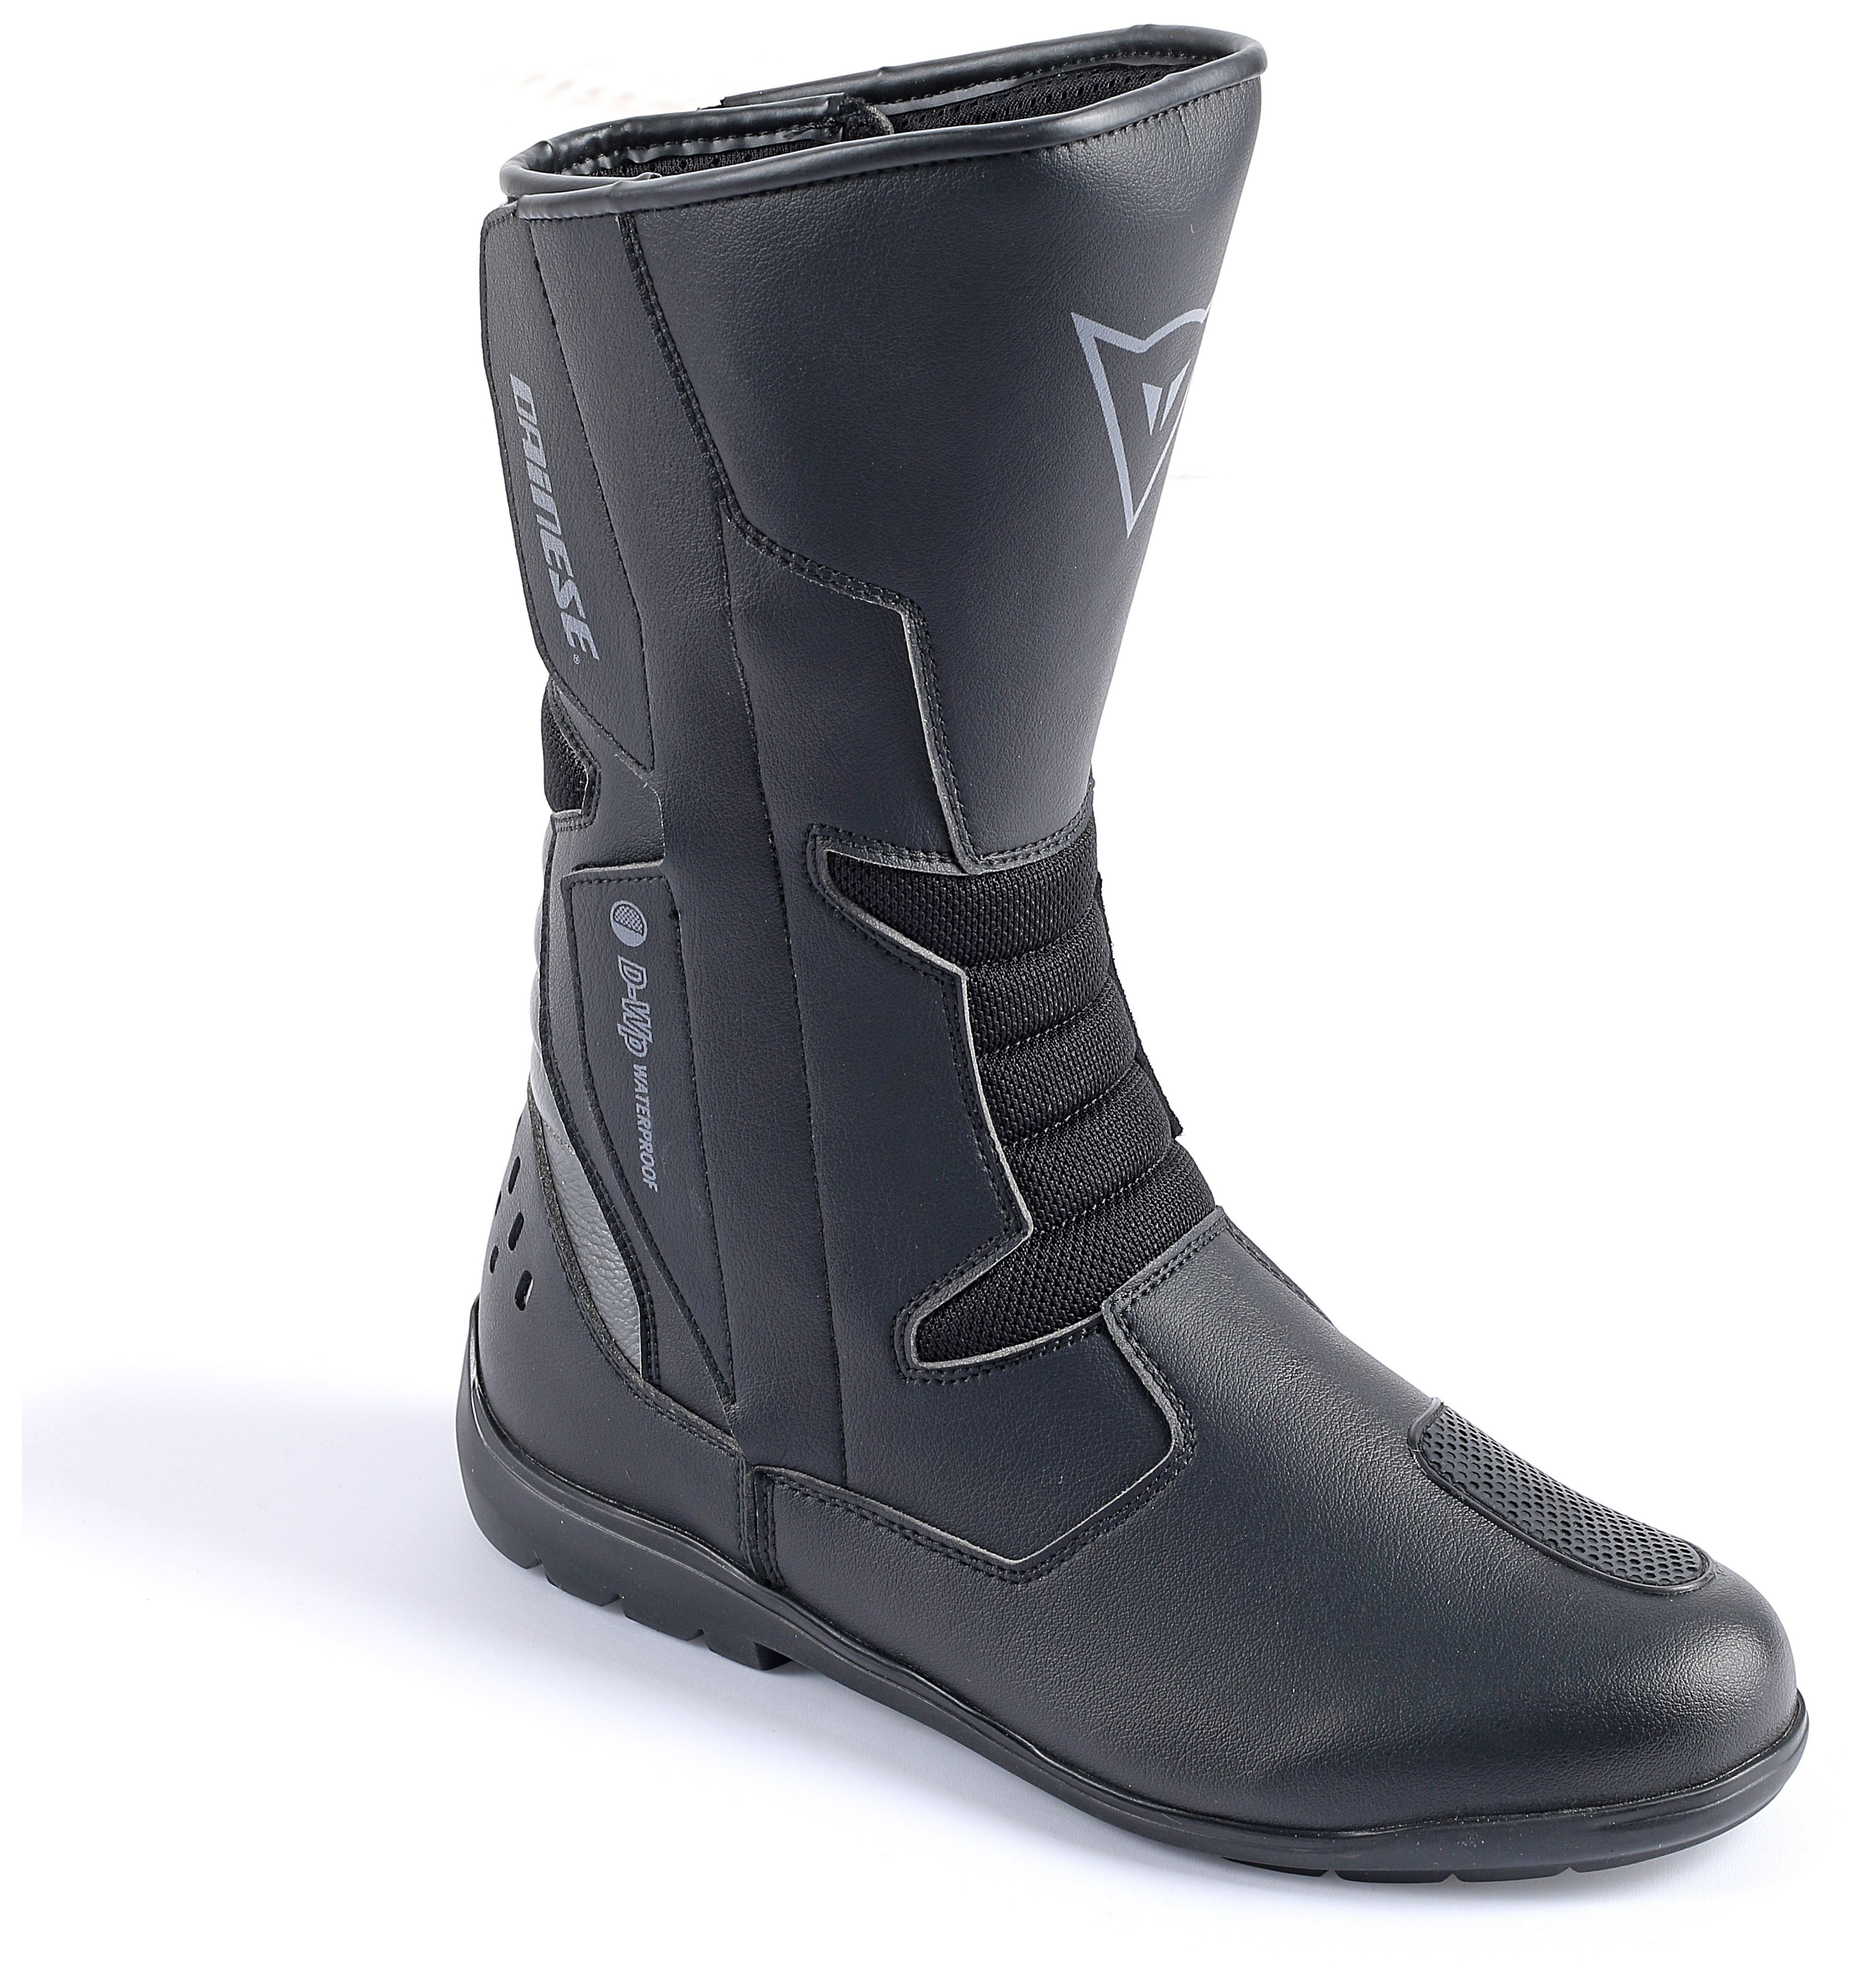 dainese street biker d wp shoes cycle gear. Black Bedroom Furniture Sets. Home Design Ideas